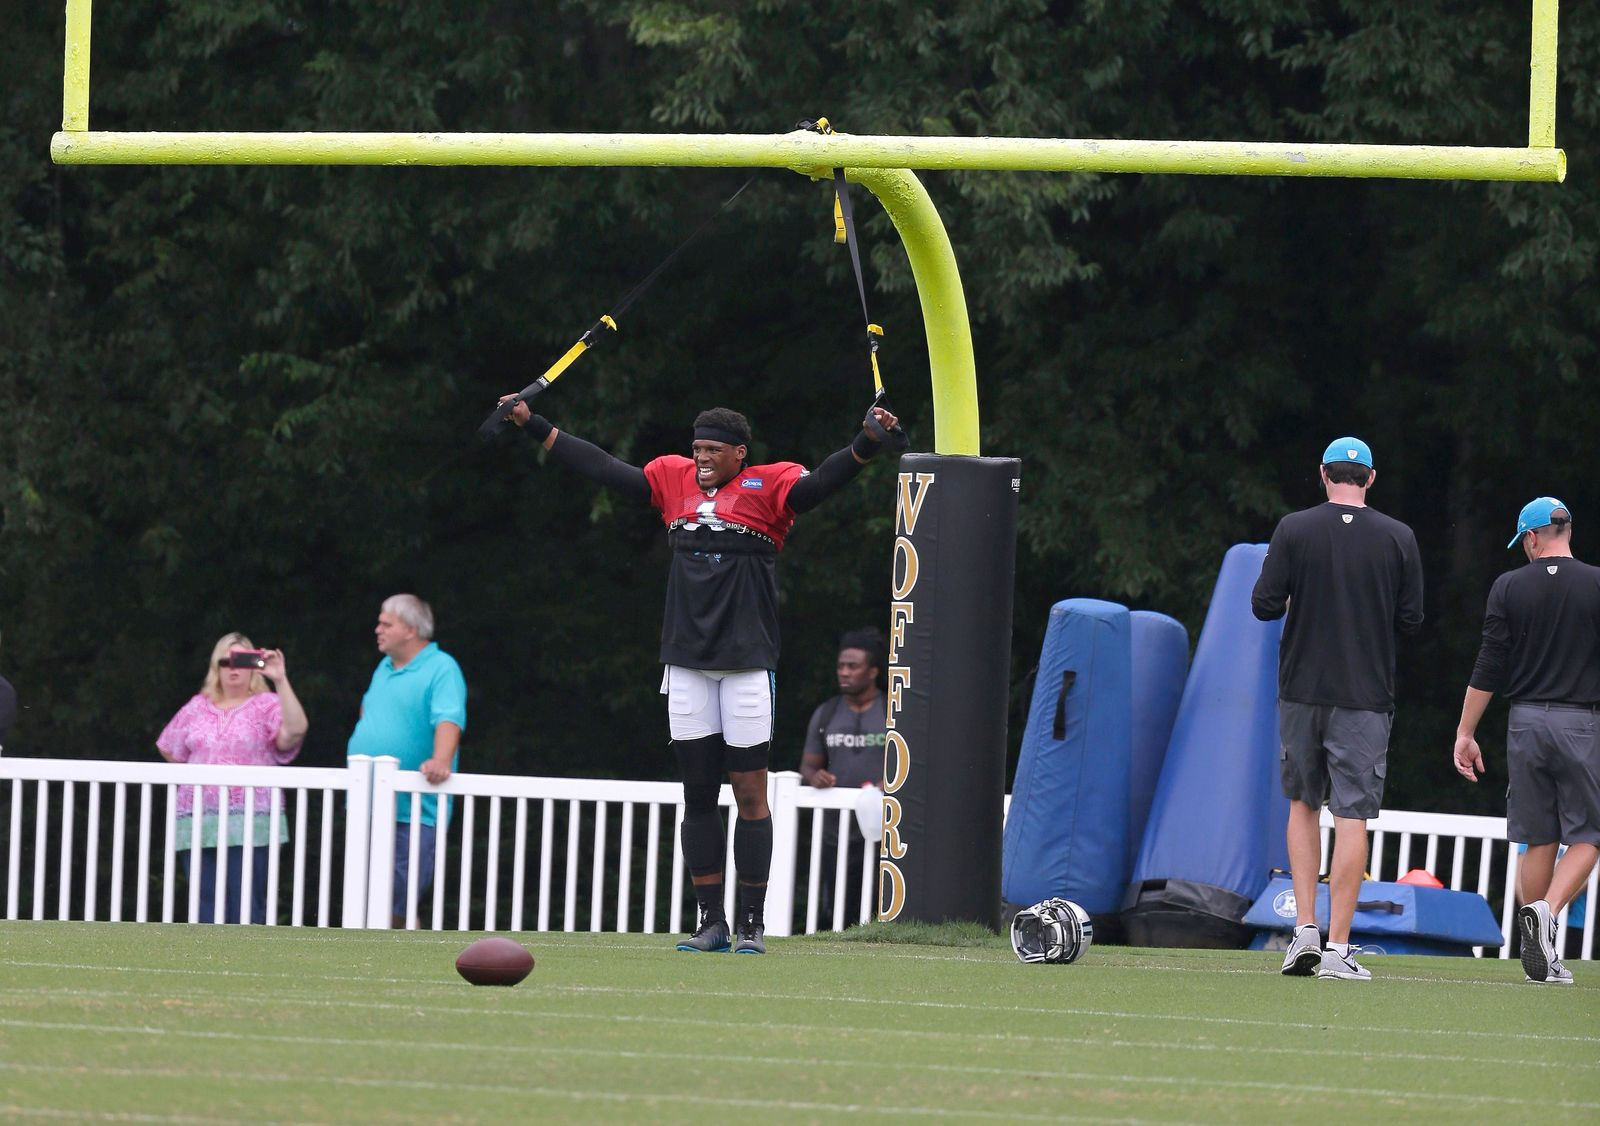 Carolina Panthers' Cam Newton (1) stretches during practice at the NFL team's football training camp at Wofford College in Spartanburg, S.C., Wednesday, Aug. 2, 2017. (AP Photo/Chuck Burton)